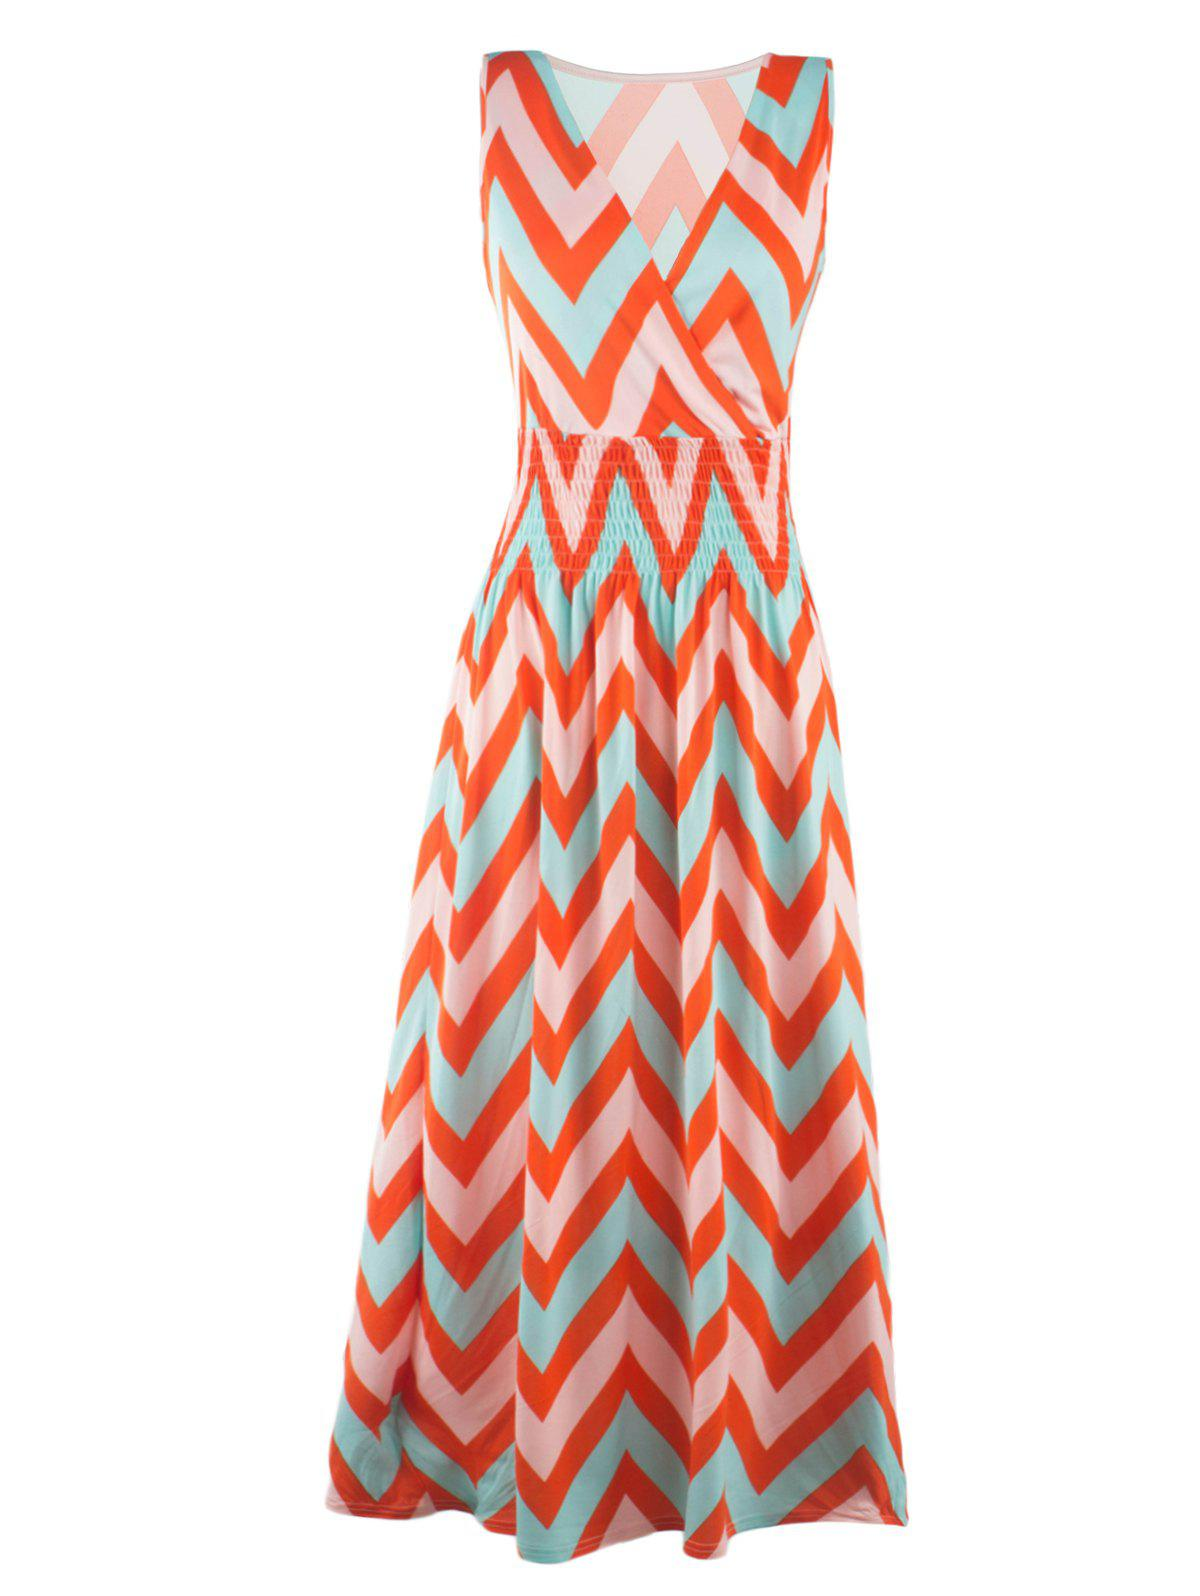 Bohemian Plung Neck Sleeveless Zig Zag Dress